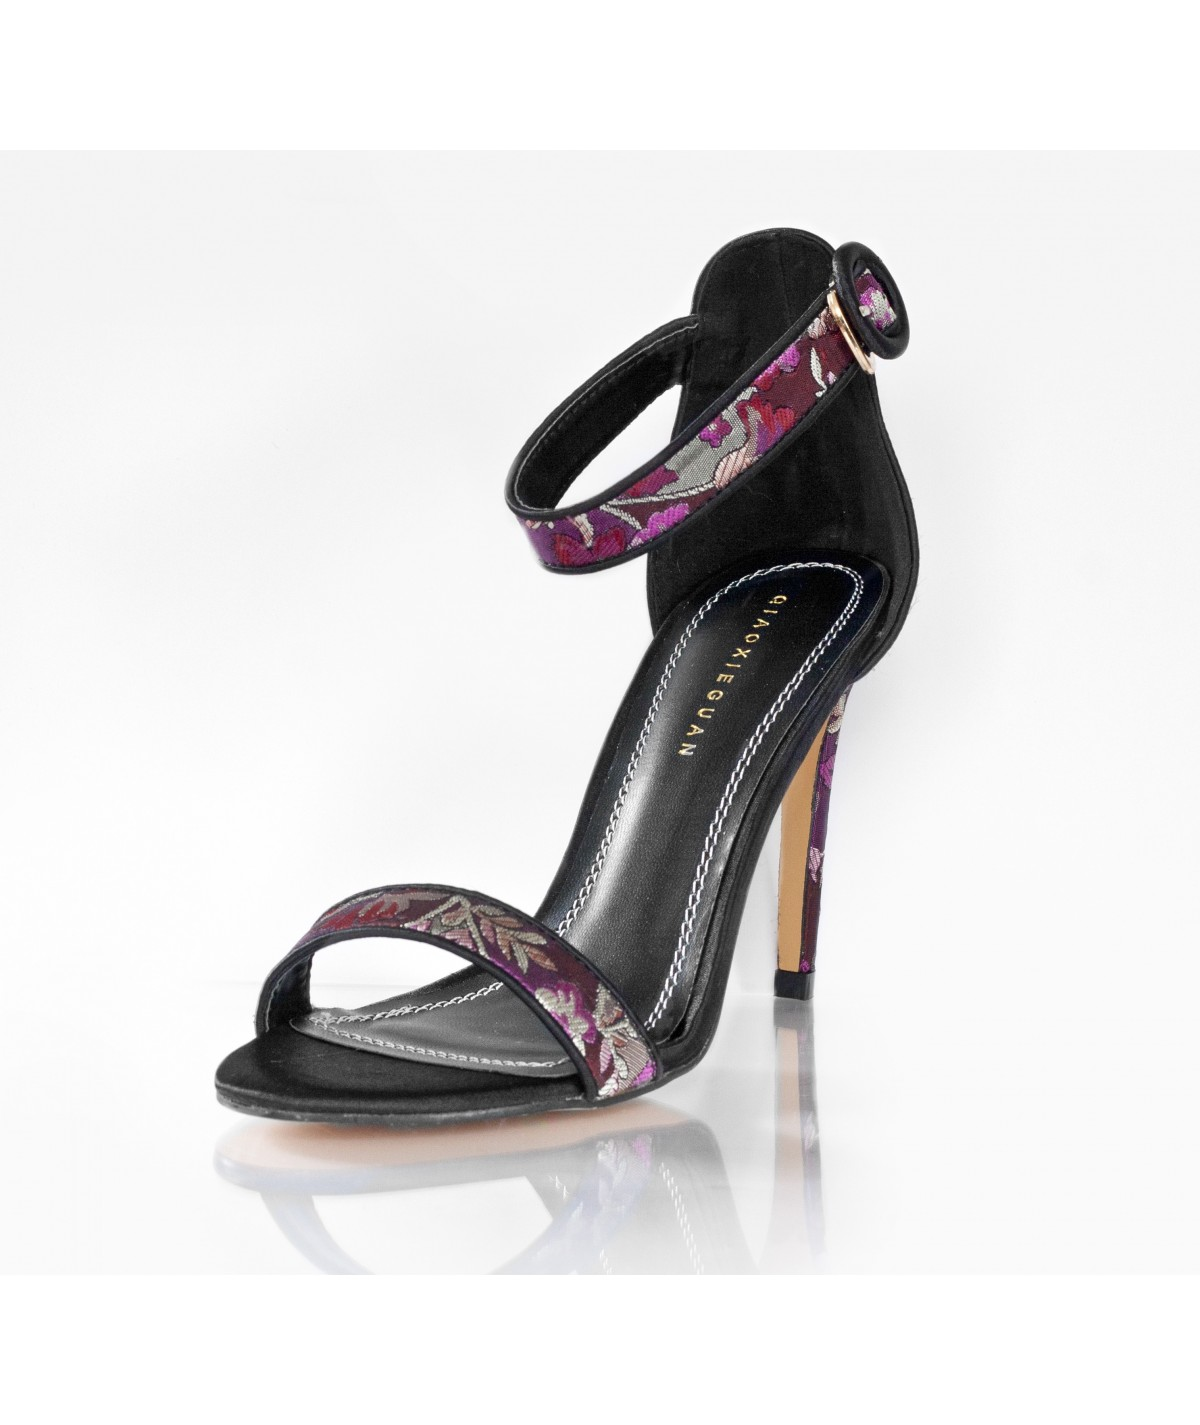 Purple and Black Sandals with High Heels - Catalina